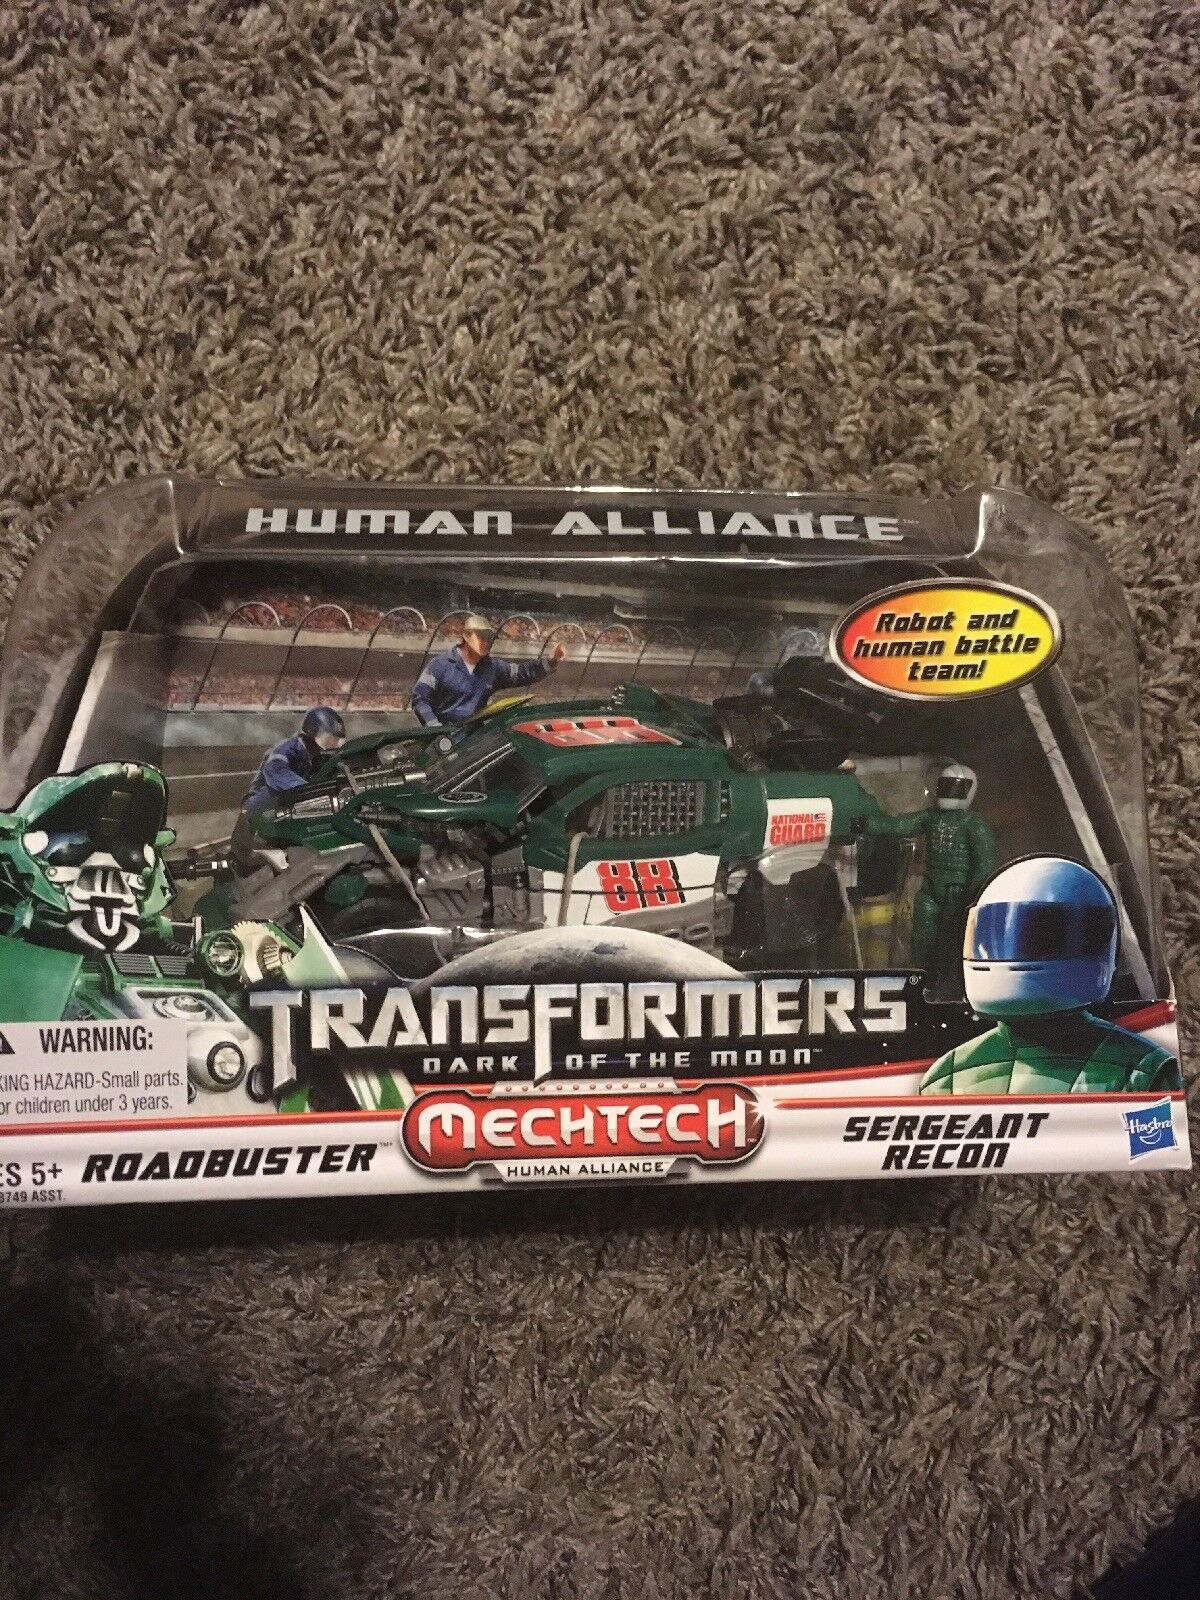 Transformers DOTM Human Alliance Roadbuster With Sergeant Recon MISB Hasbro 2011